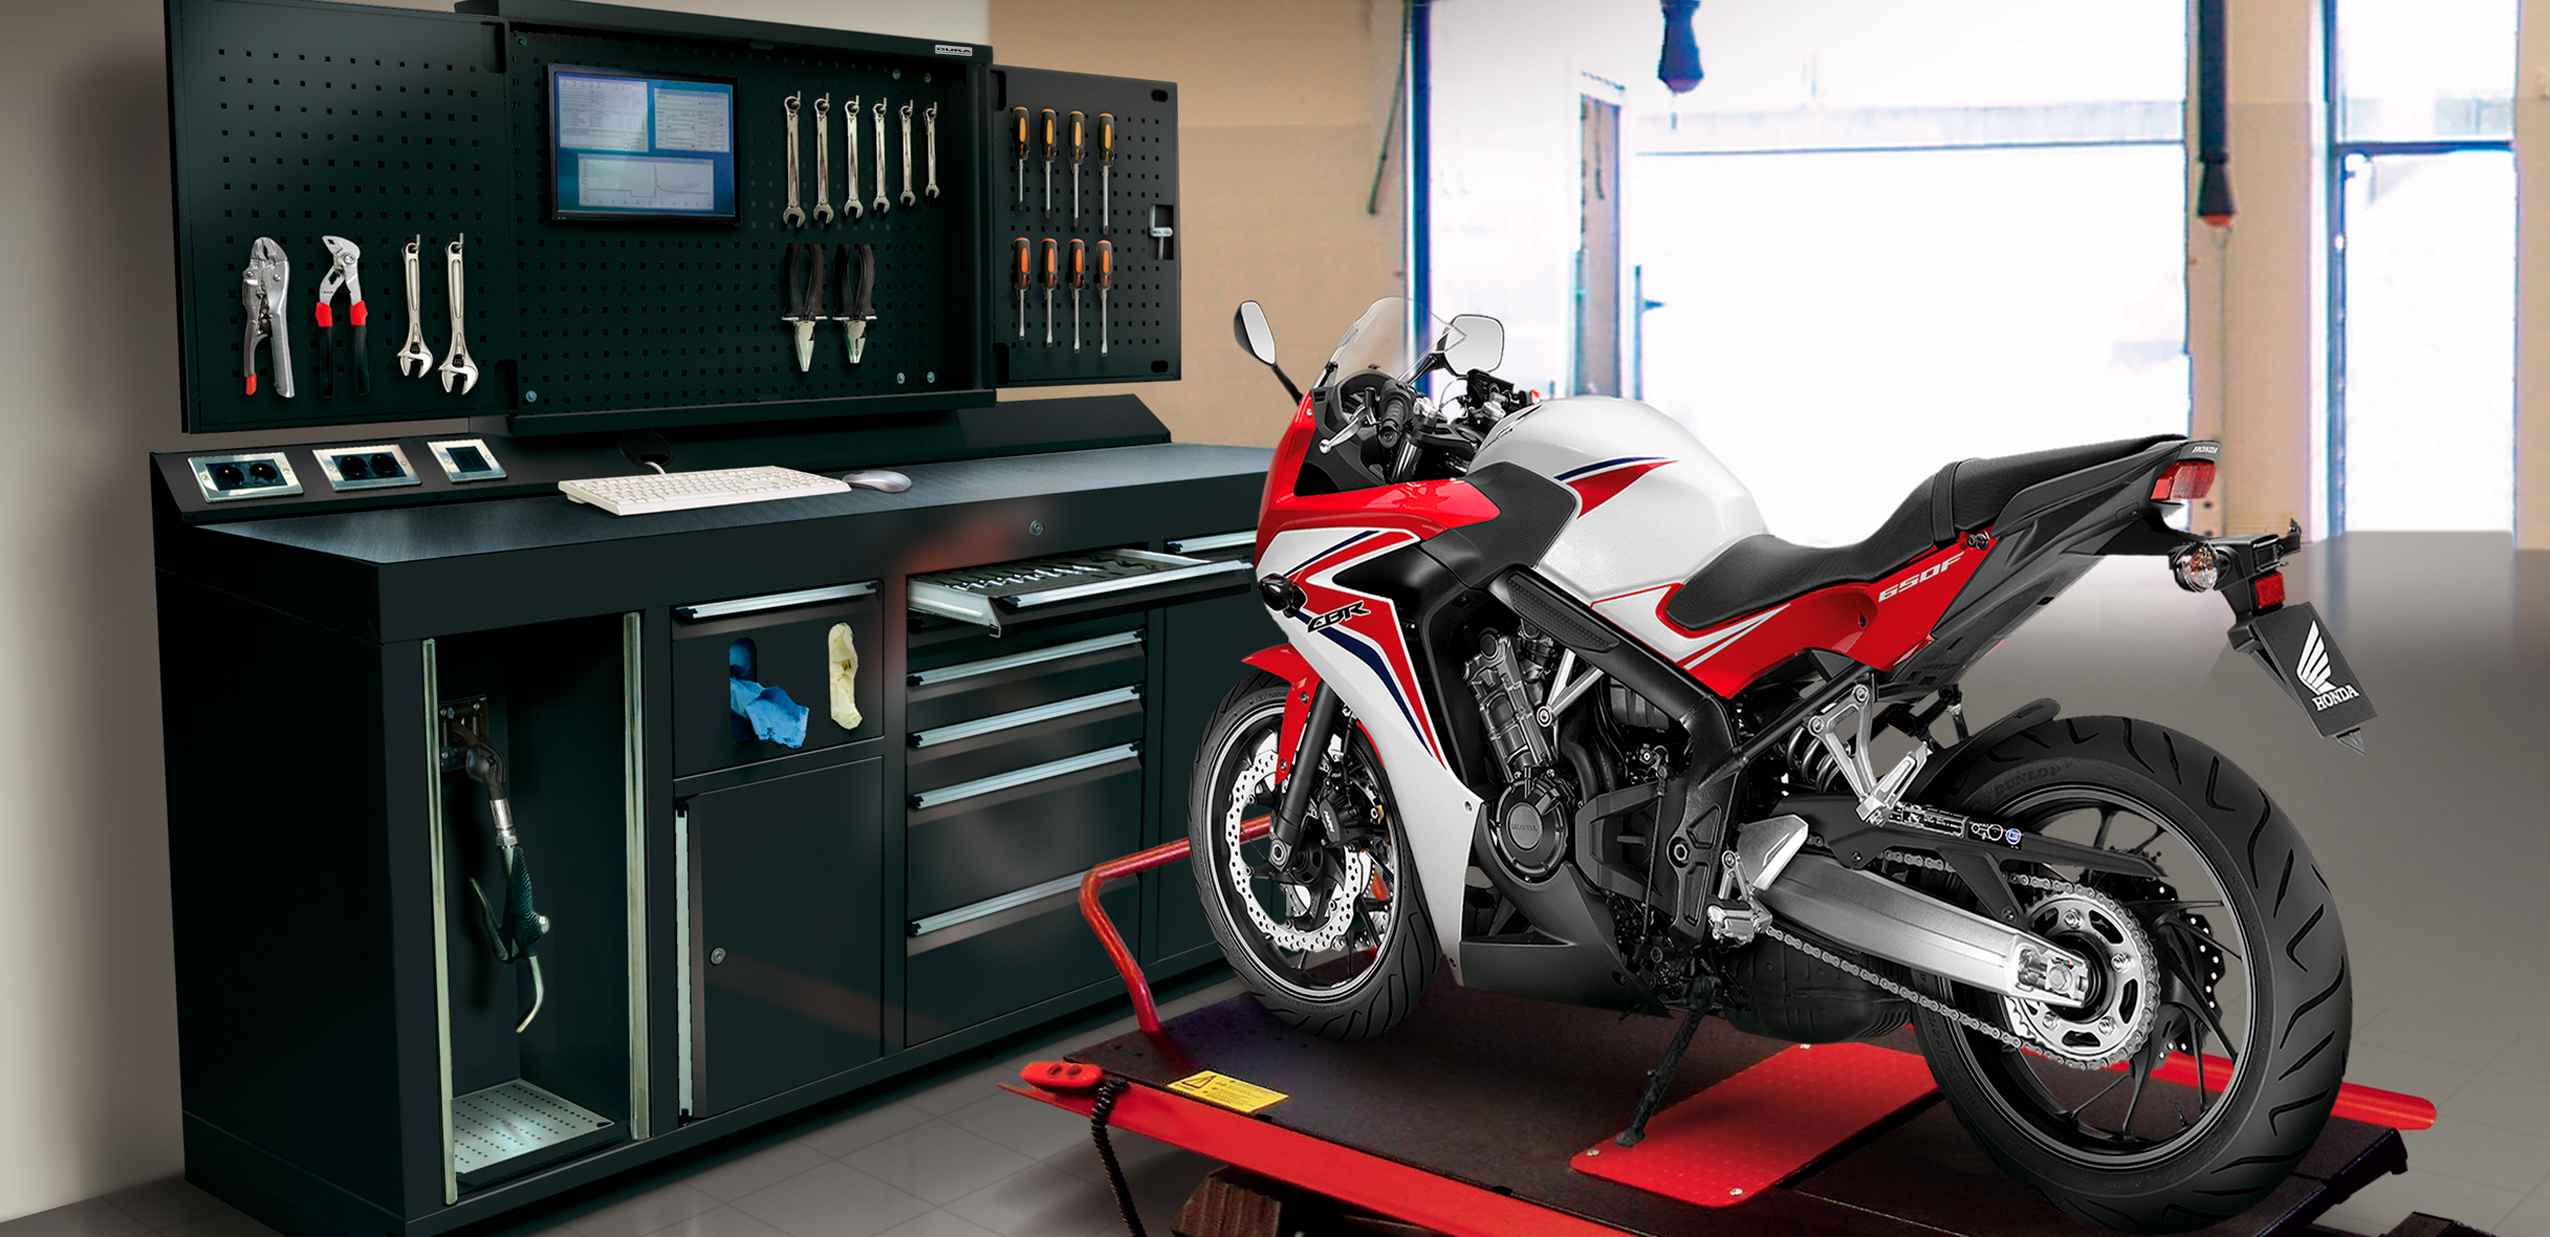 Dura ServicePod in State of the Art Motorcycle Workshop